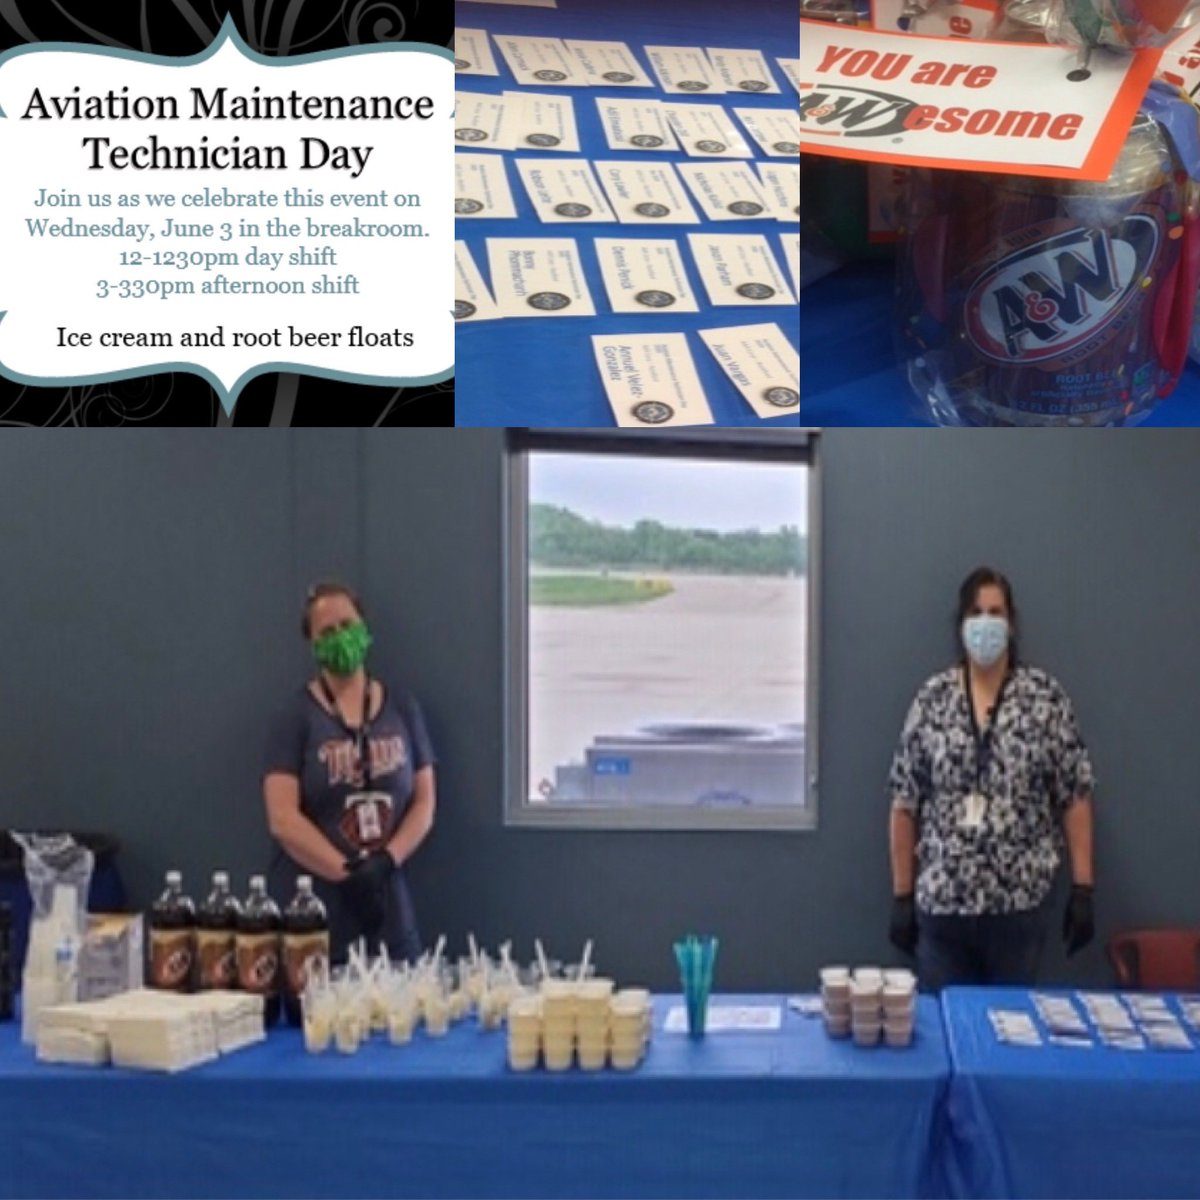 AAR #Rockford celebrated #Aviation Maintenance Technician Day with a root beer float celebration. Troy Primus, VP Operations, and Dany Kleiman, GM, thanked the entire staff for their wonderful work and dedication! #AMTday #RFD #BestTeamInAviation #MRO https://t.co/0xNnPE61B3